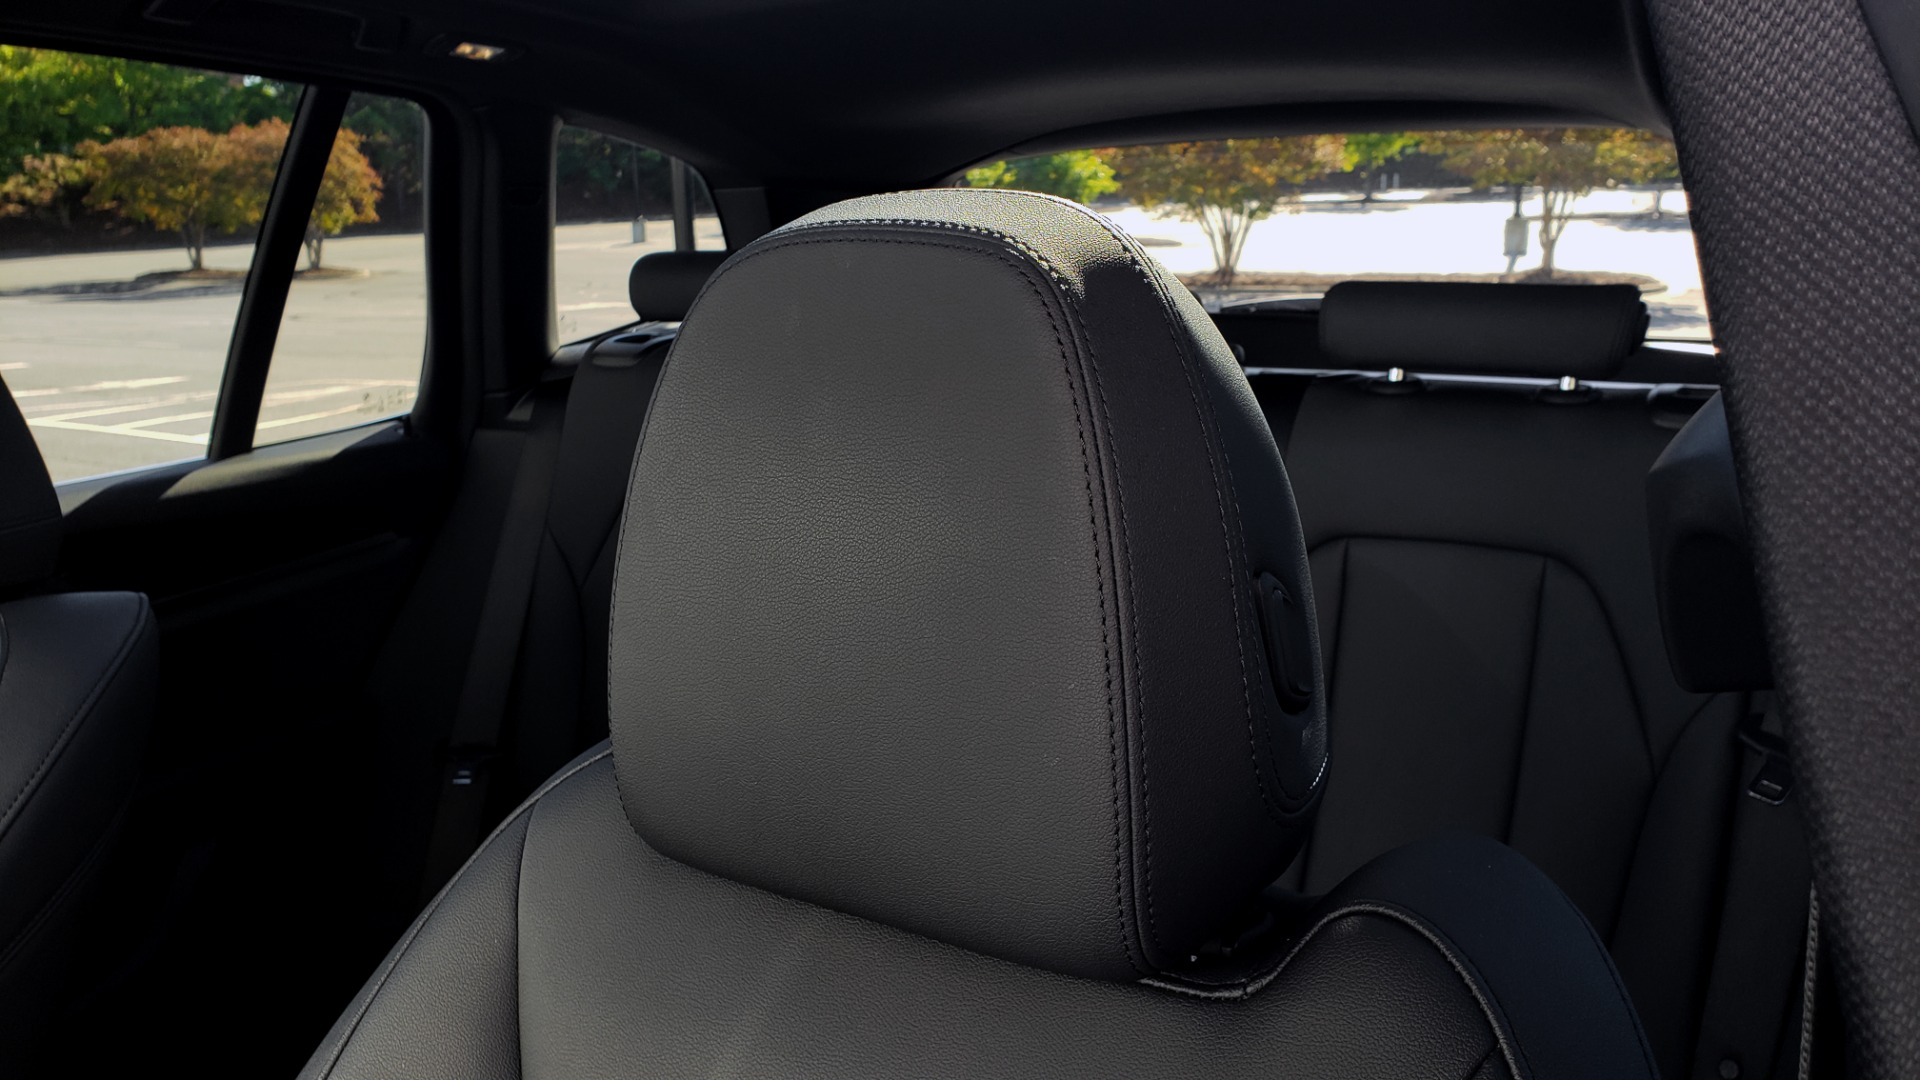 Used 2019 BMW X3 XDRIVE30I / DRVR ASST / PANO-ROOF / HTD STS / REARVIEW for sale $41,995 at Formula Imports in Charlotte NC 28227 41